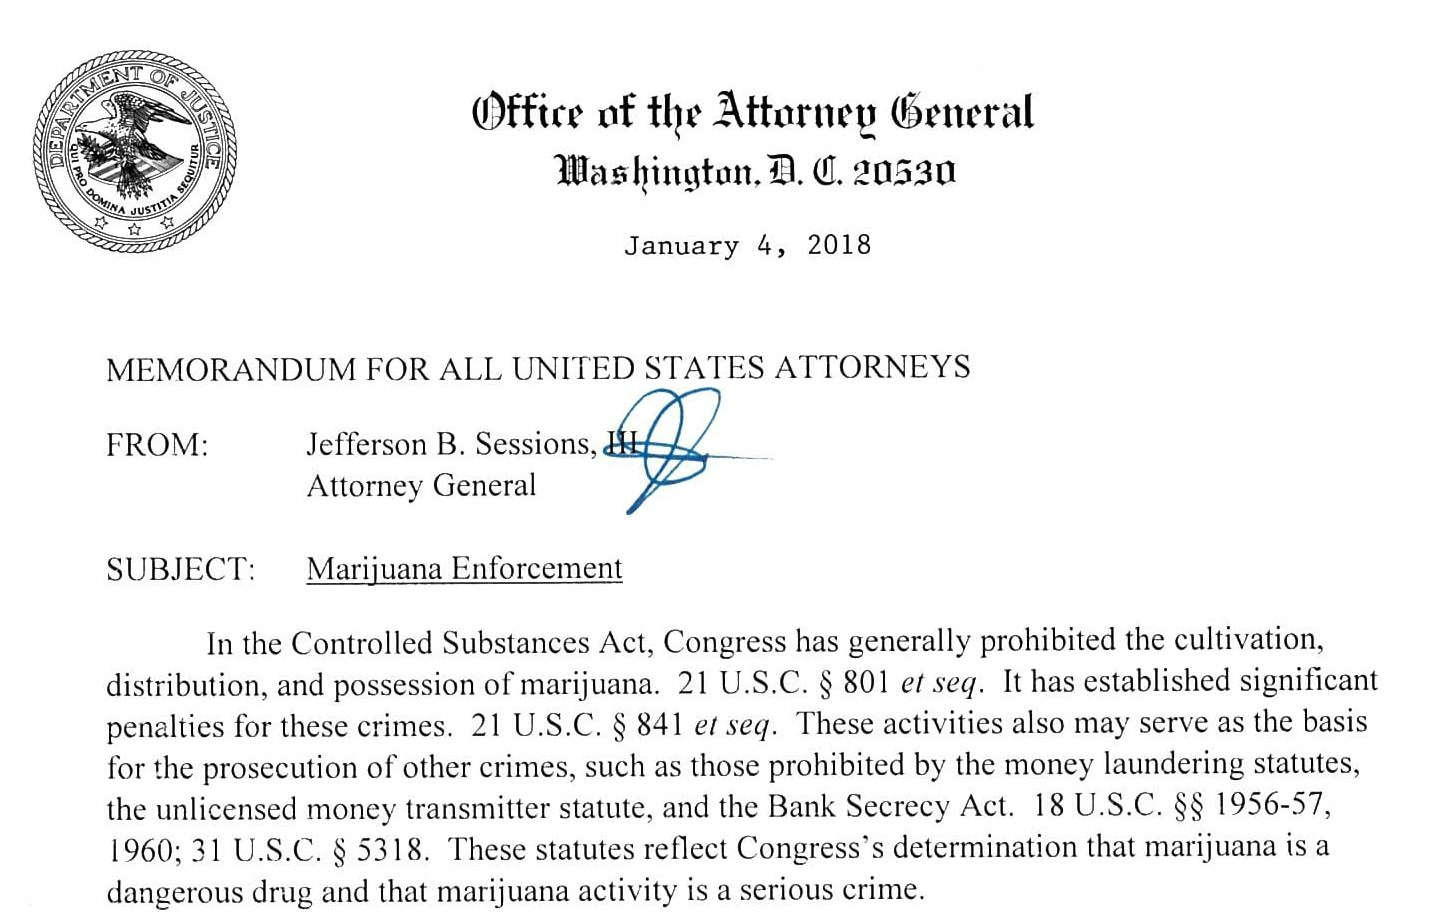 ag_marijuana_enforcement_1.4.18_0-1.jpg